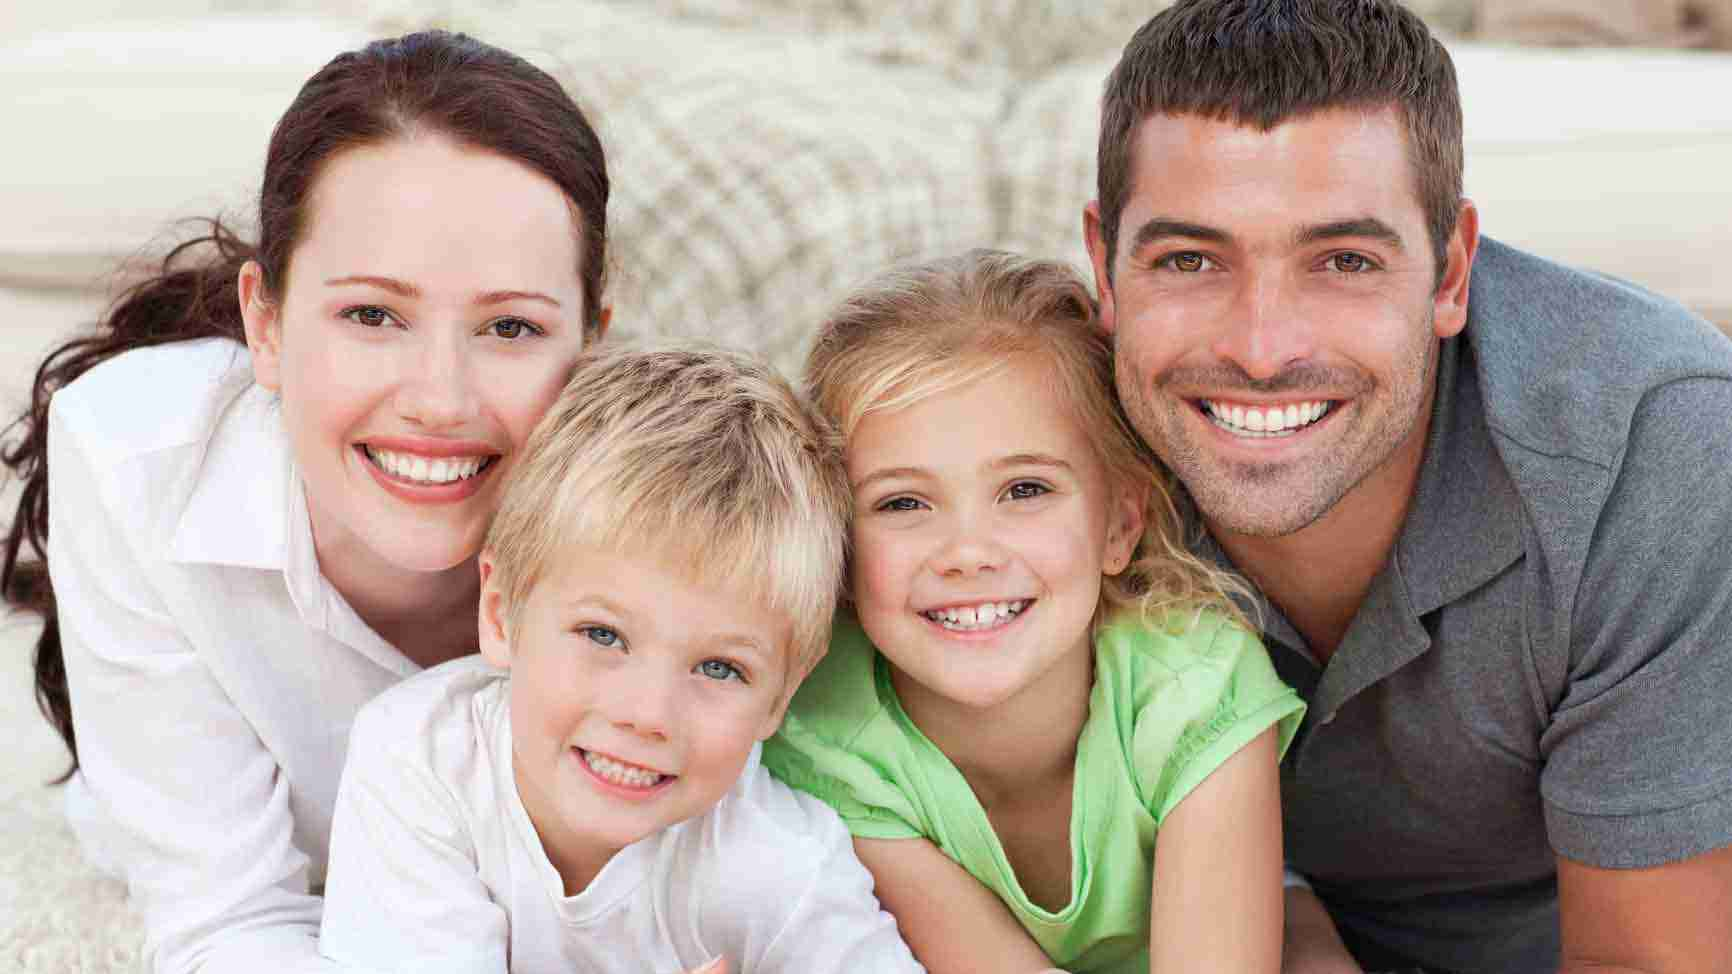 Parenting in a nuclear family